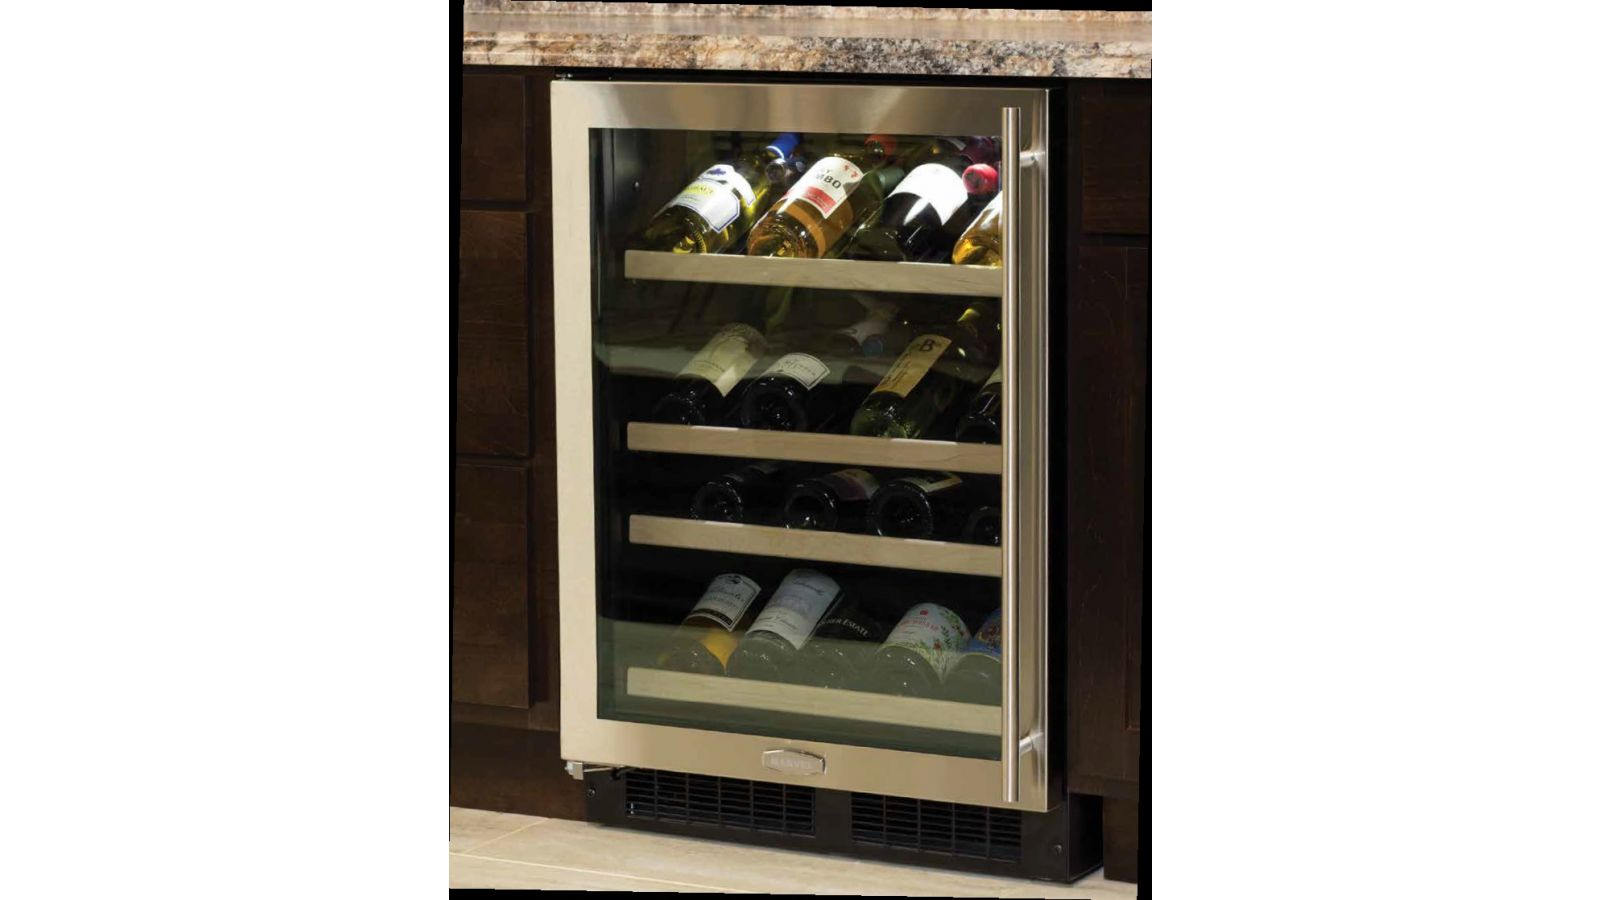 24 Marvel High-Efficiency Gallery Wine Cellar